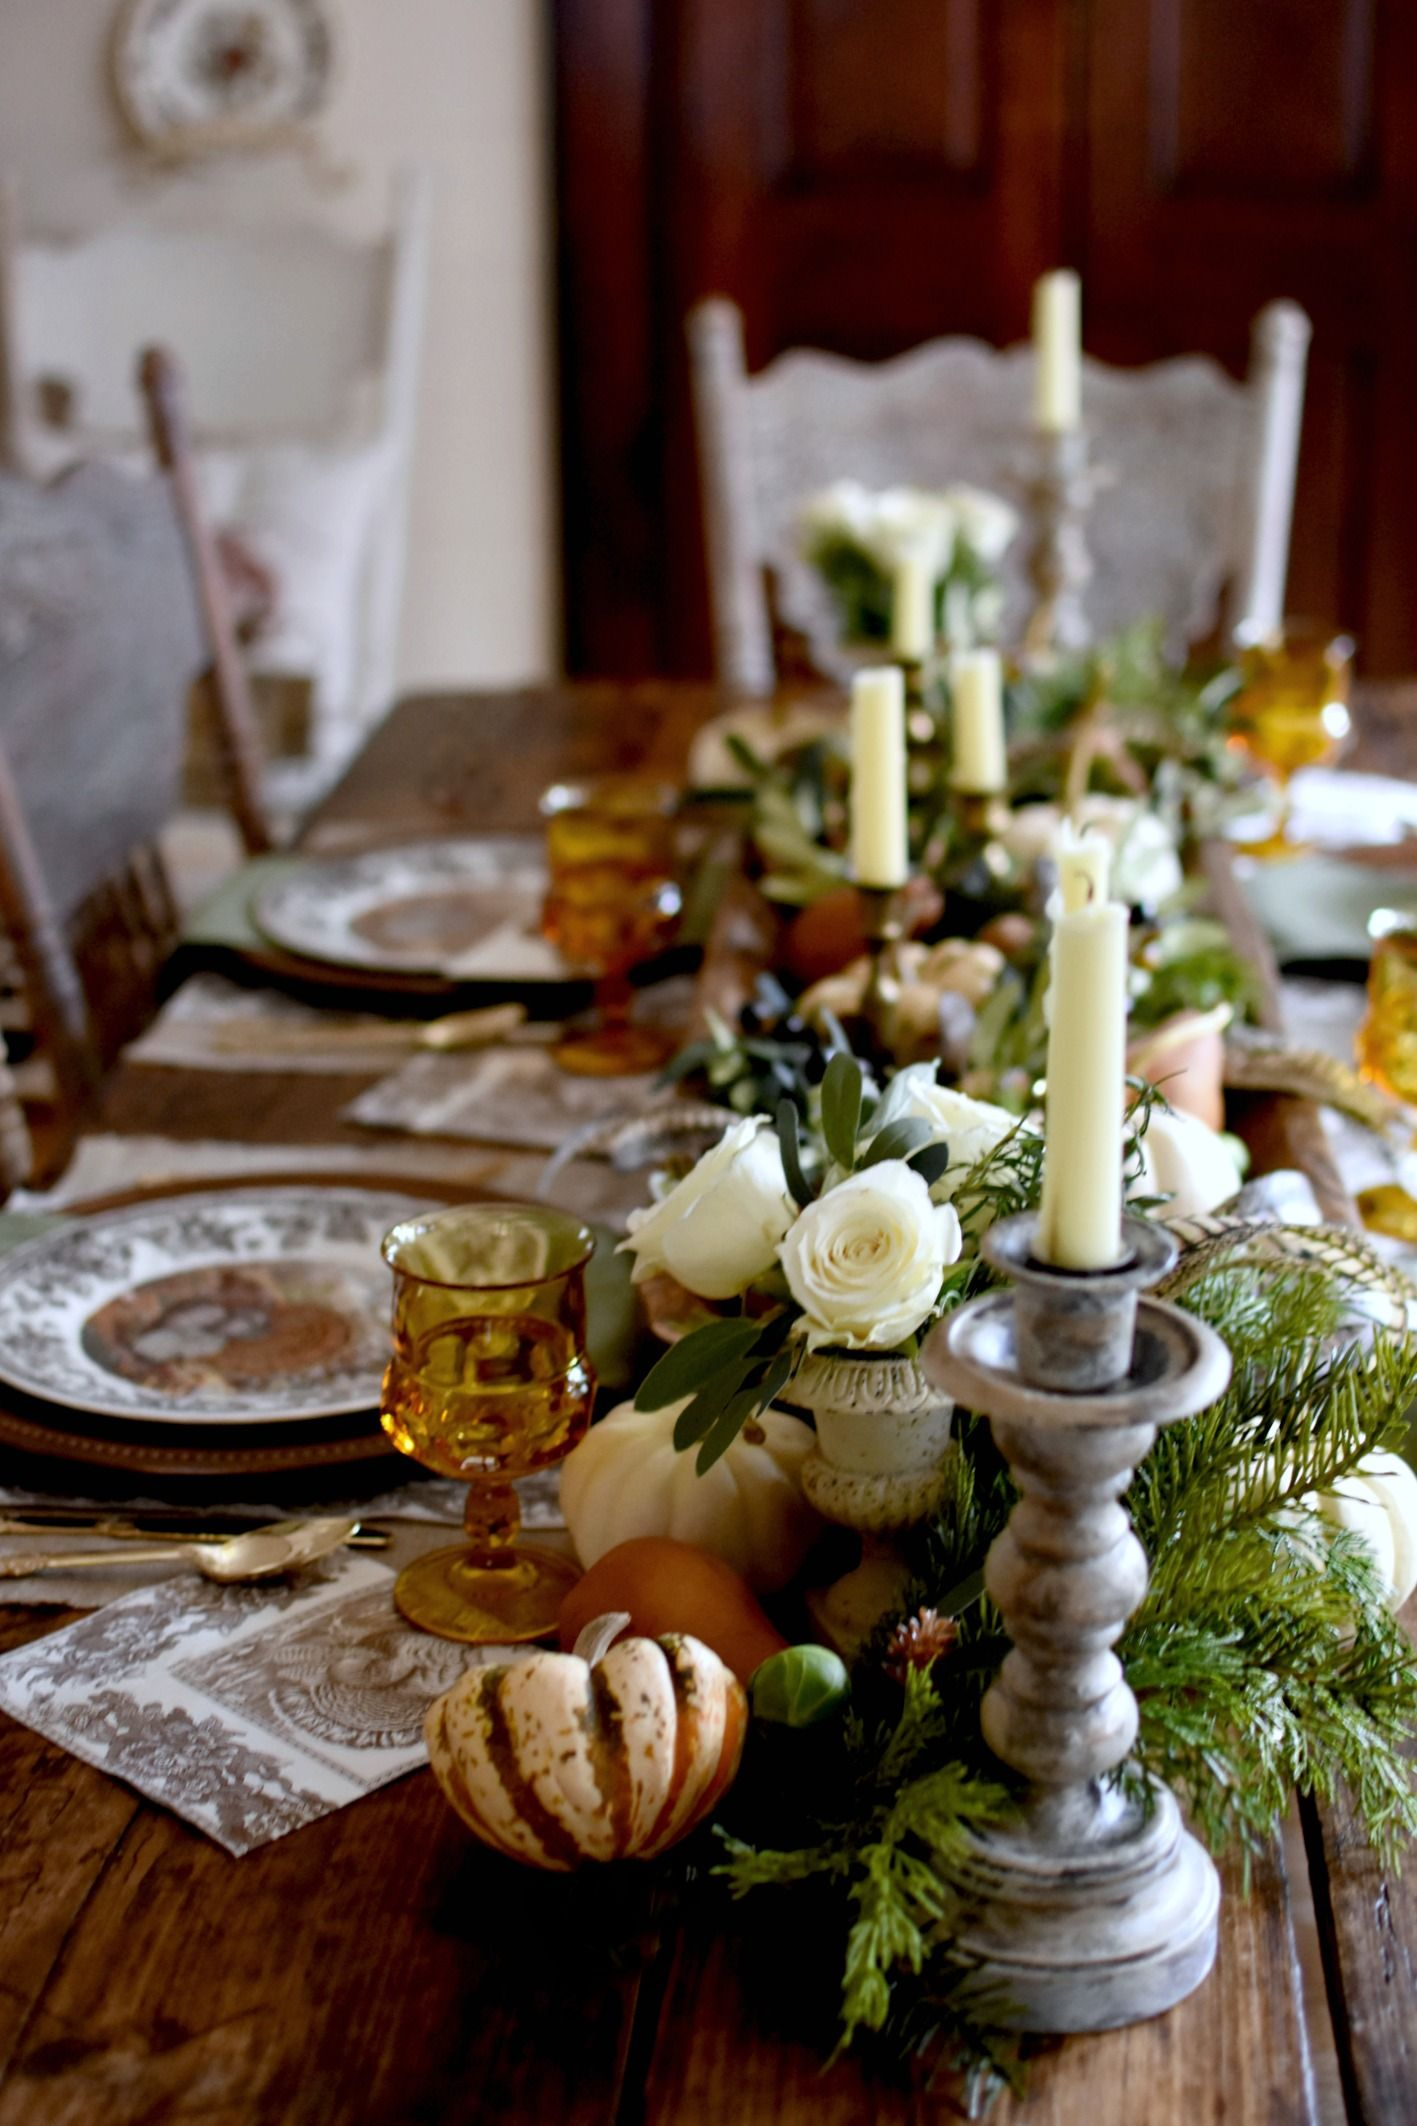 Beautiful French Country Thanksgiving Tablescape With Autumn Elegance In 2020 Thanksgiving Table Decorations Thanksgiving Table Settings Elegant Thanksgiving Tablescapes